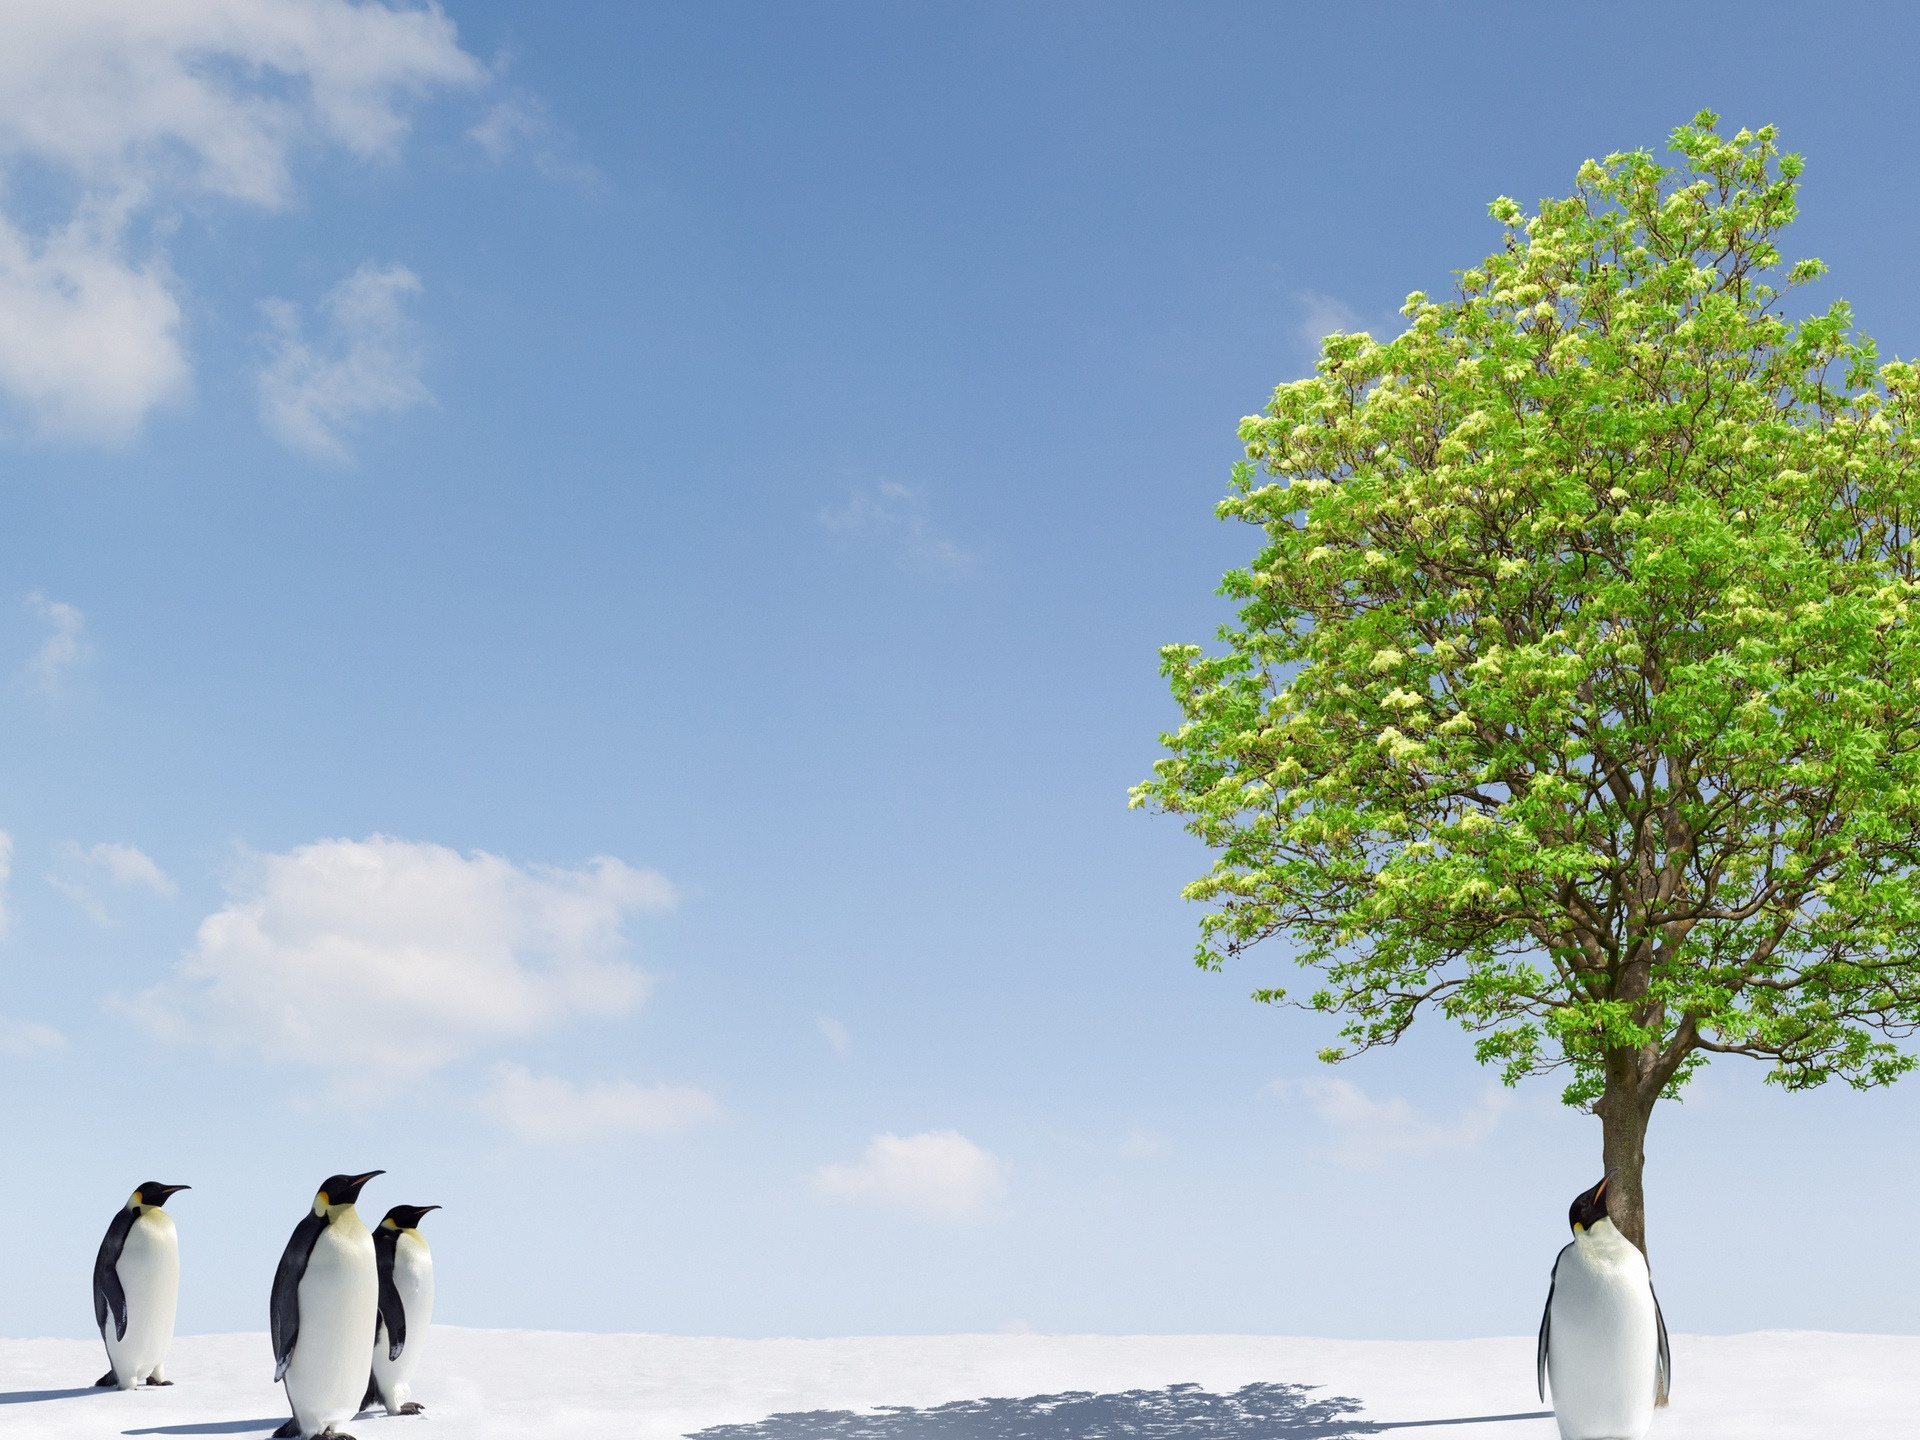 click to free download the wallpaper--Beautiful Image of Nature Landscape, Penguins Around a Green Tree, a Rarely Seen Scene